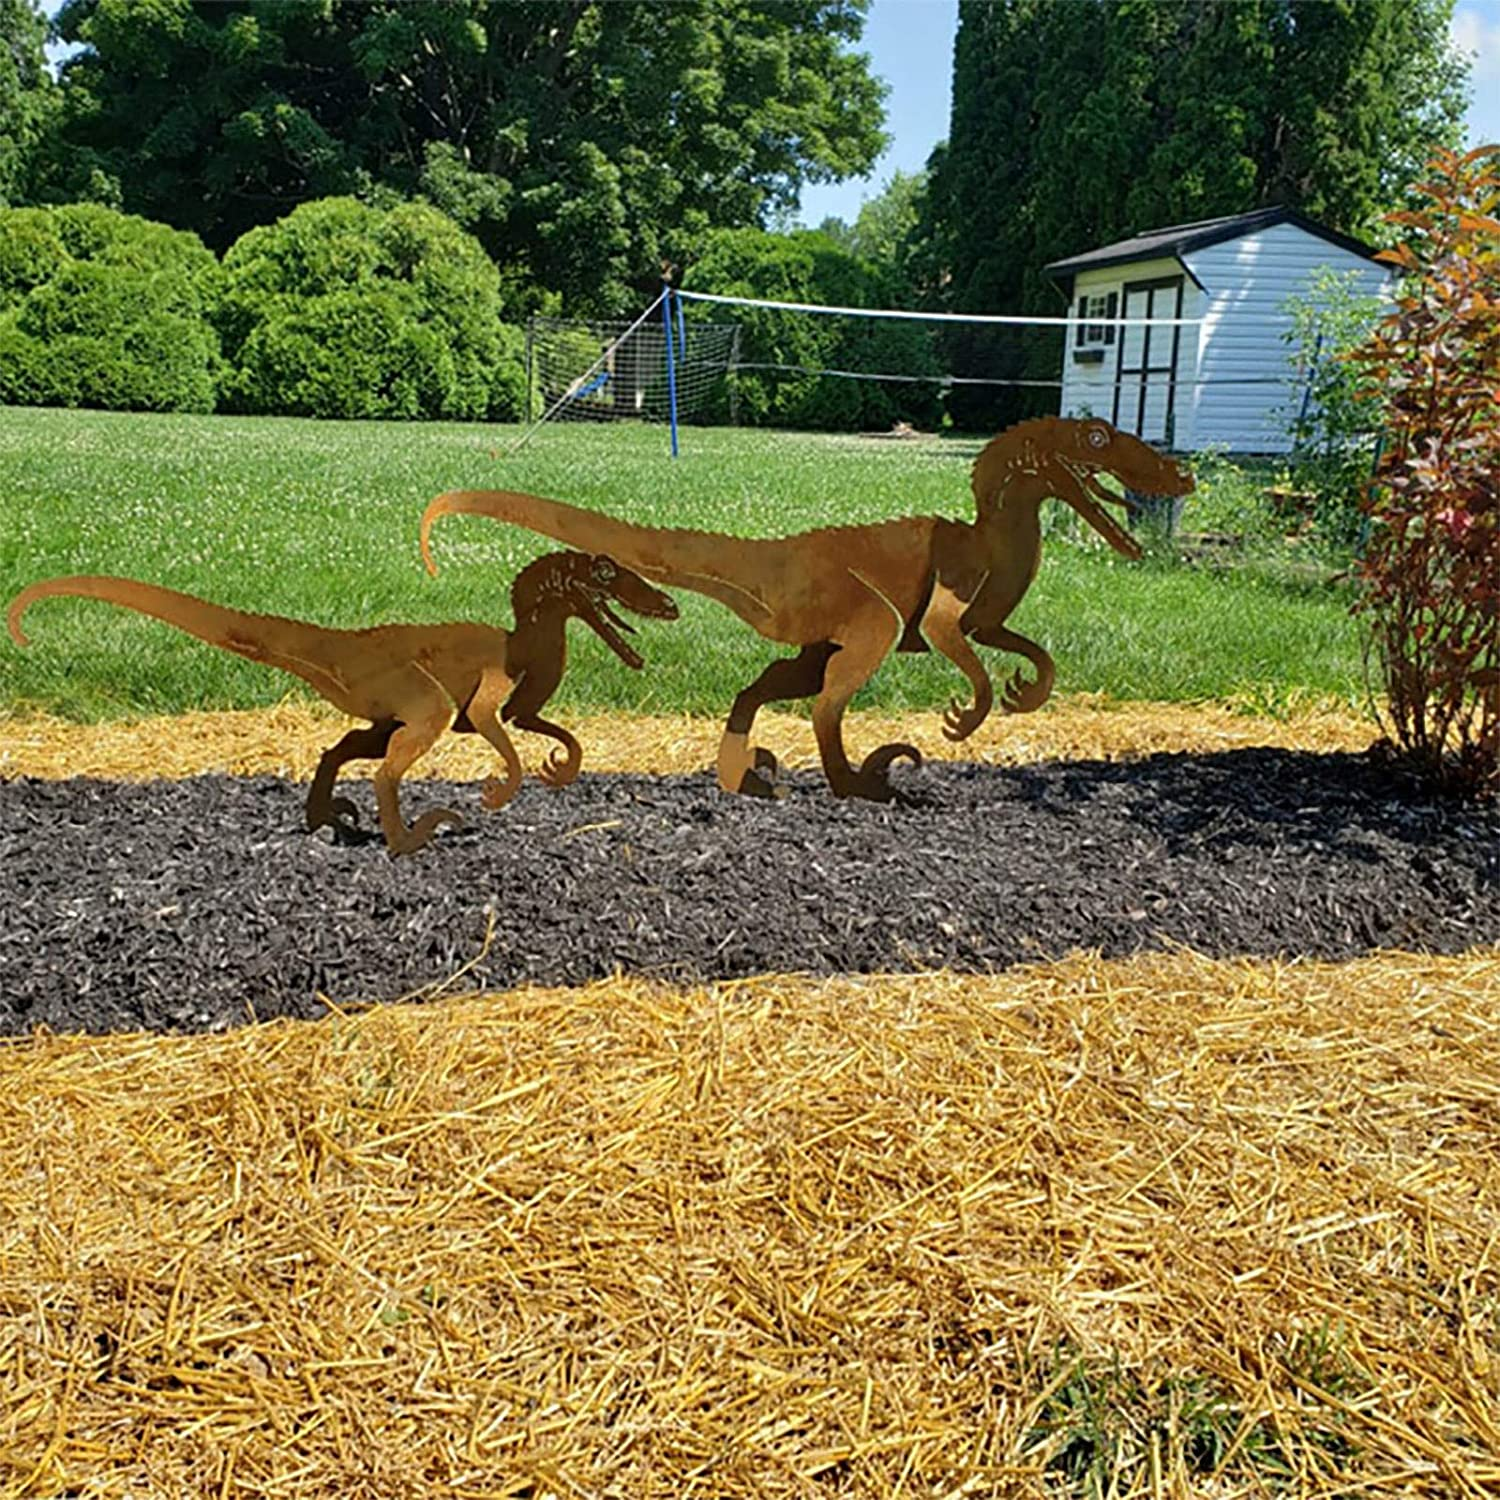 Paity Dinosaur Metal Animal Stakes, Dinosaur Garden Silhouette, Metal Garden Fence Stake for Lawn Outdoor Patio Home Decor, Yard Art for Festival Gifts Set